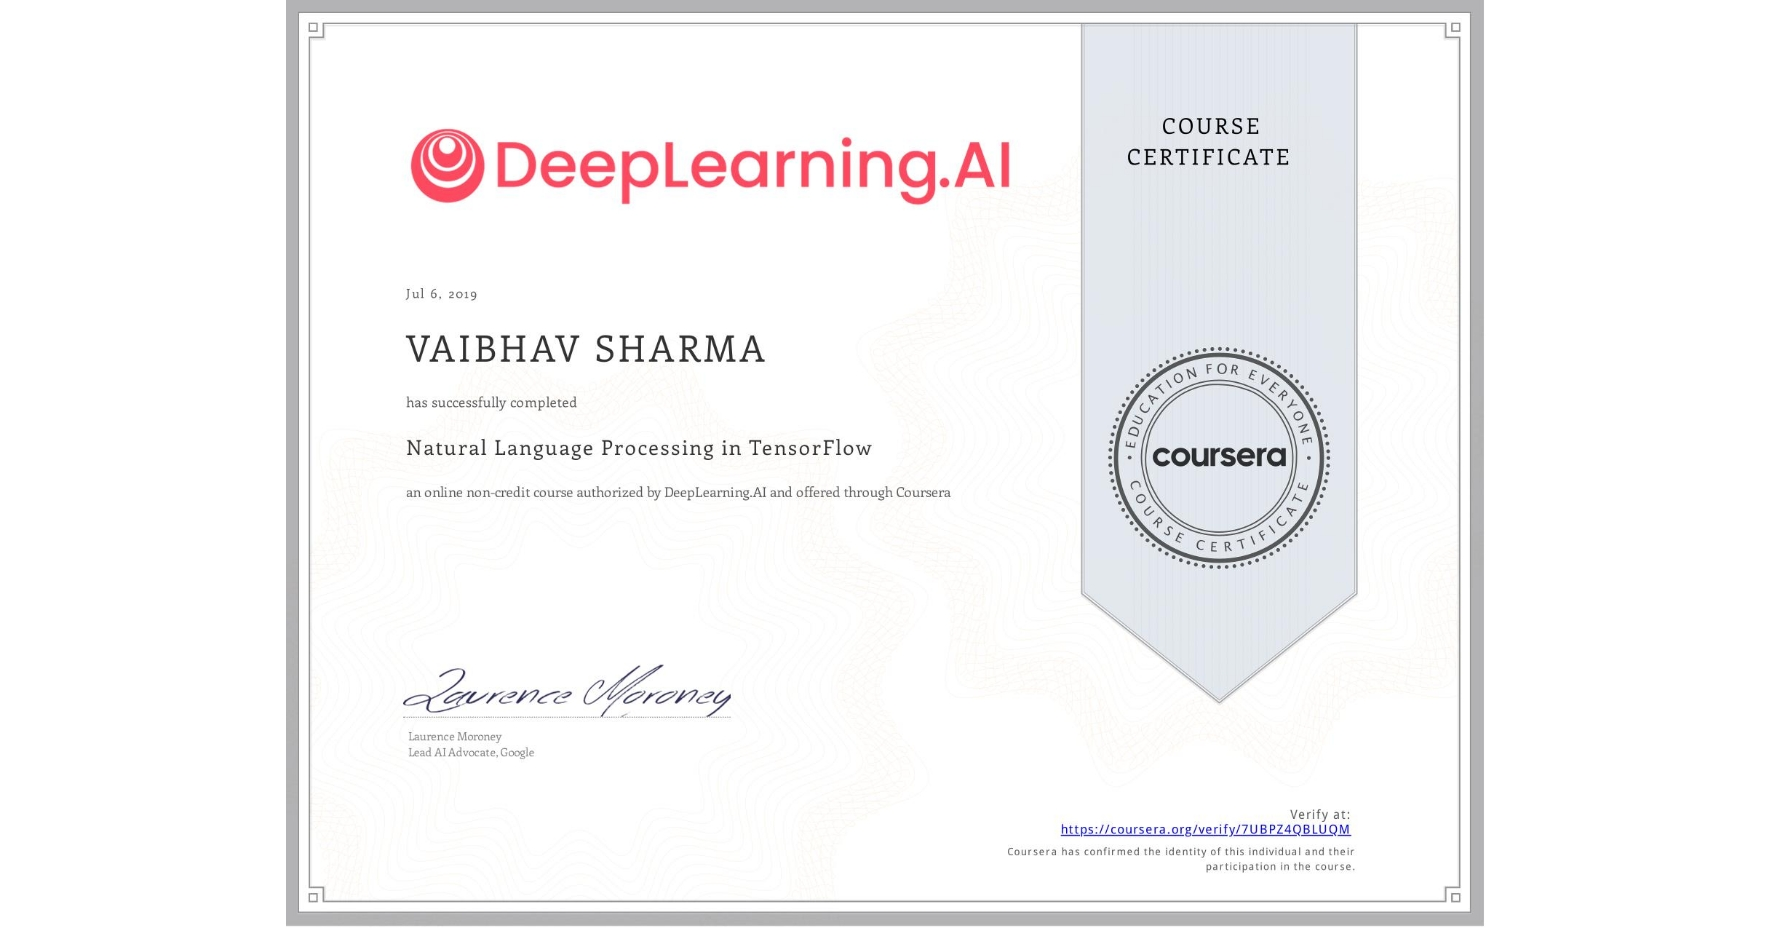 View certificate for VAIBHAV SHARMA, Natural Language Processing in TensorFlow, an online non-credit course authorized by DeepLearning.AI and offered through Coursera